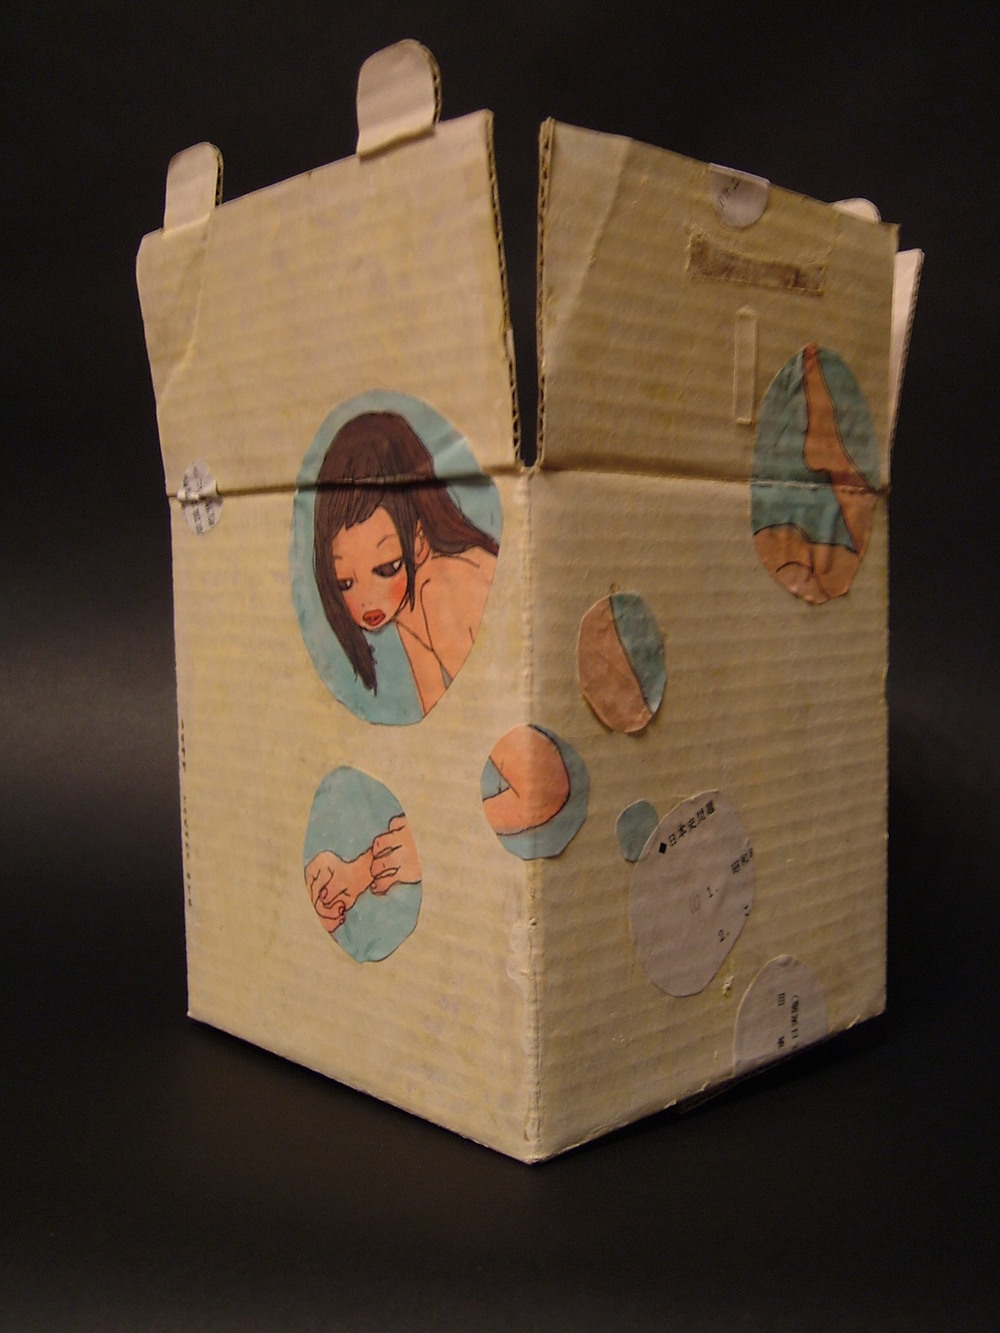 """Naked Box""  (1997)  Painting/ Collage on cardboard  8.7 x 6.2 x 5.7 in"